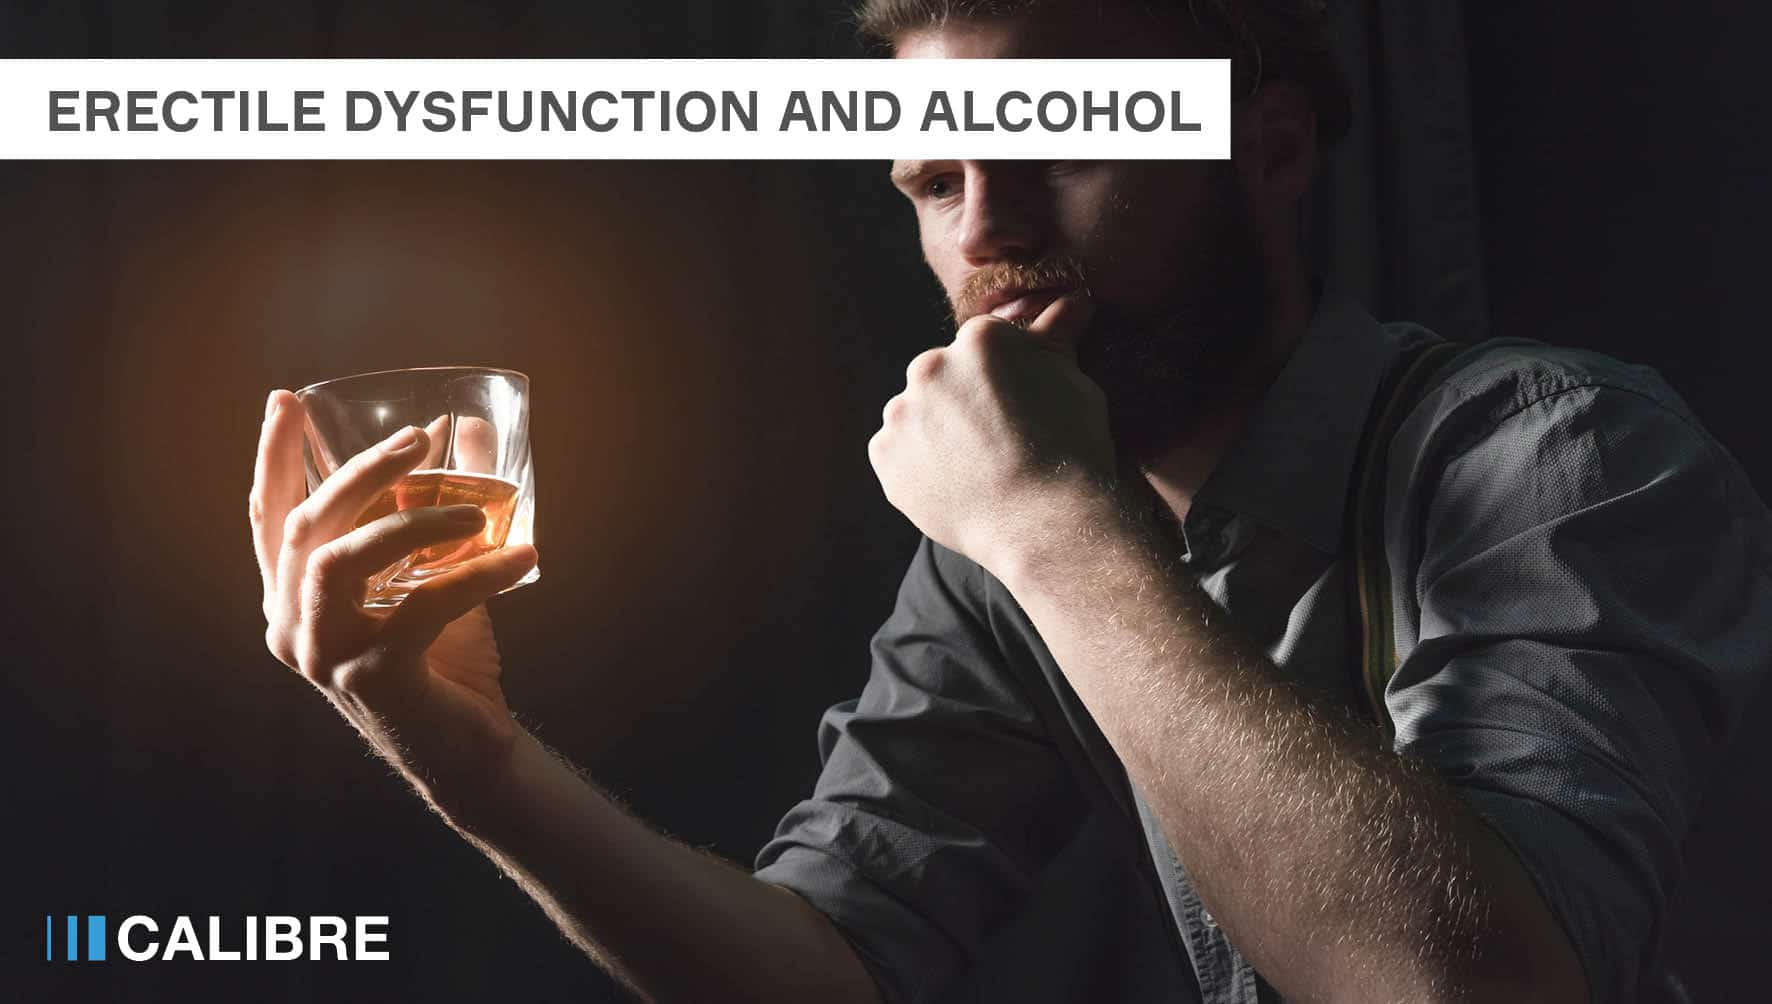 Erectile dysfunction and alcohol